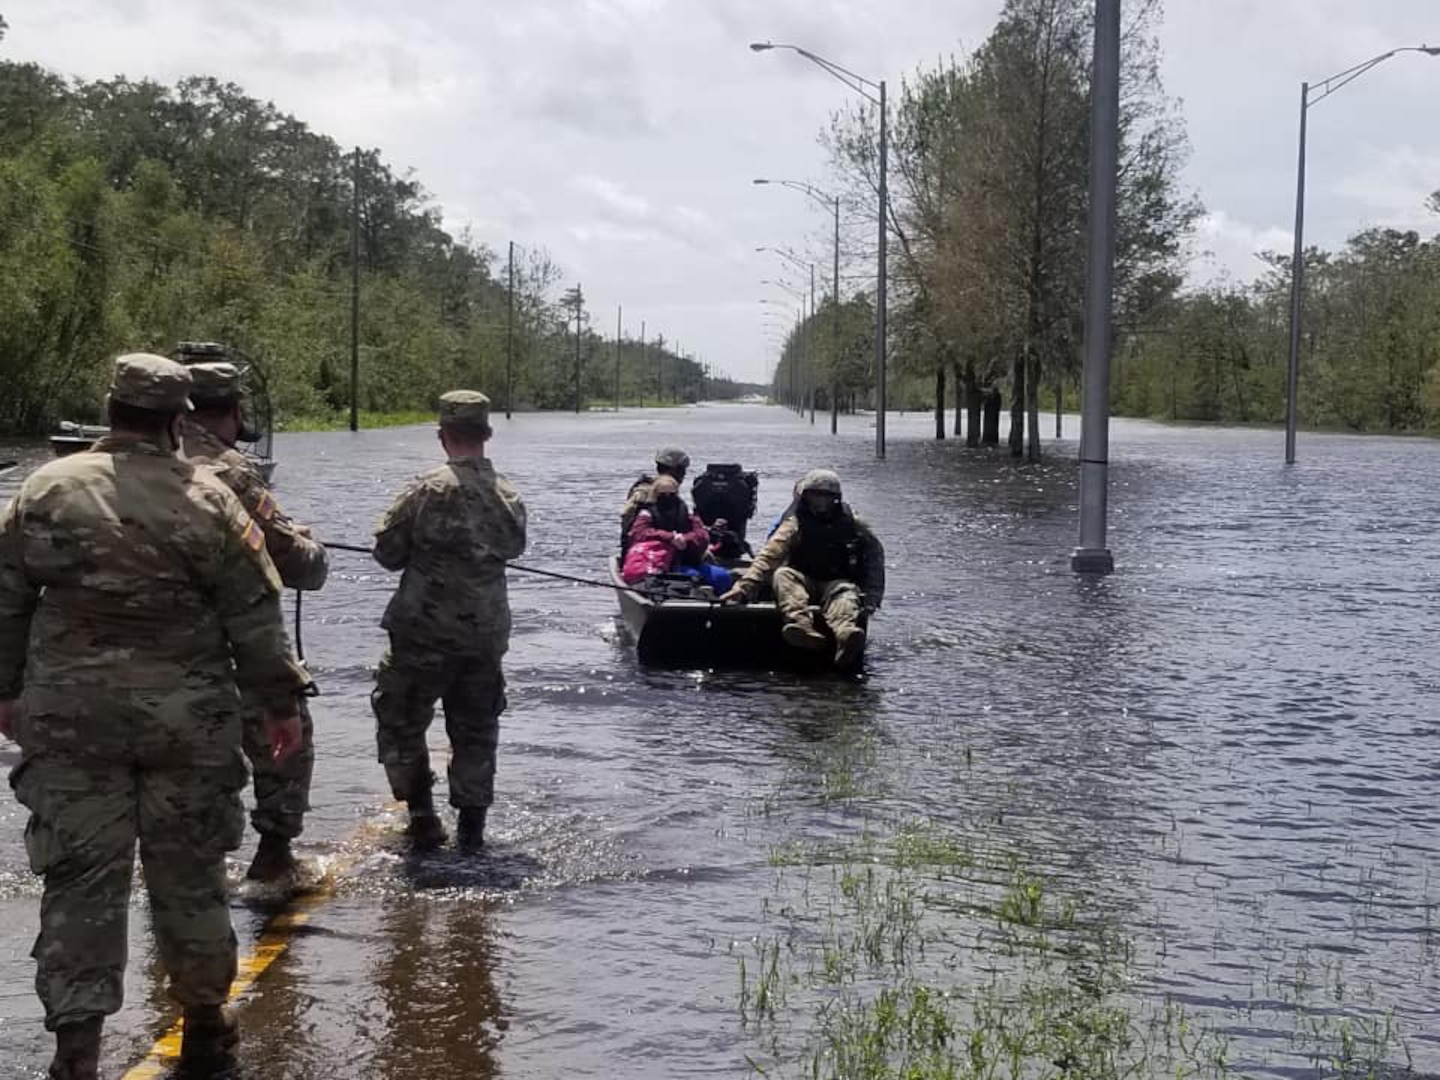 Members of the Louisiana National Guard rescue people from high water in south Louisiana caused by Hurricane Ida. As of Aug. 31, 2021, Guardsmen had rescued 359 people and 55 pets either by high-water vehicles, by boats or by air.